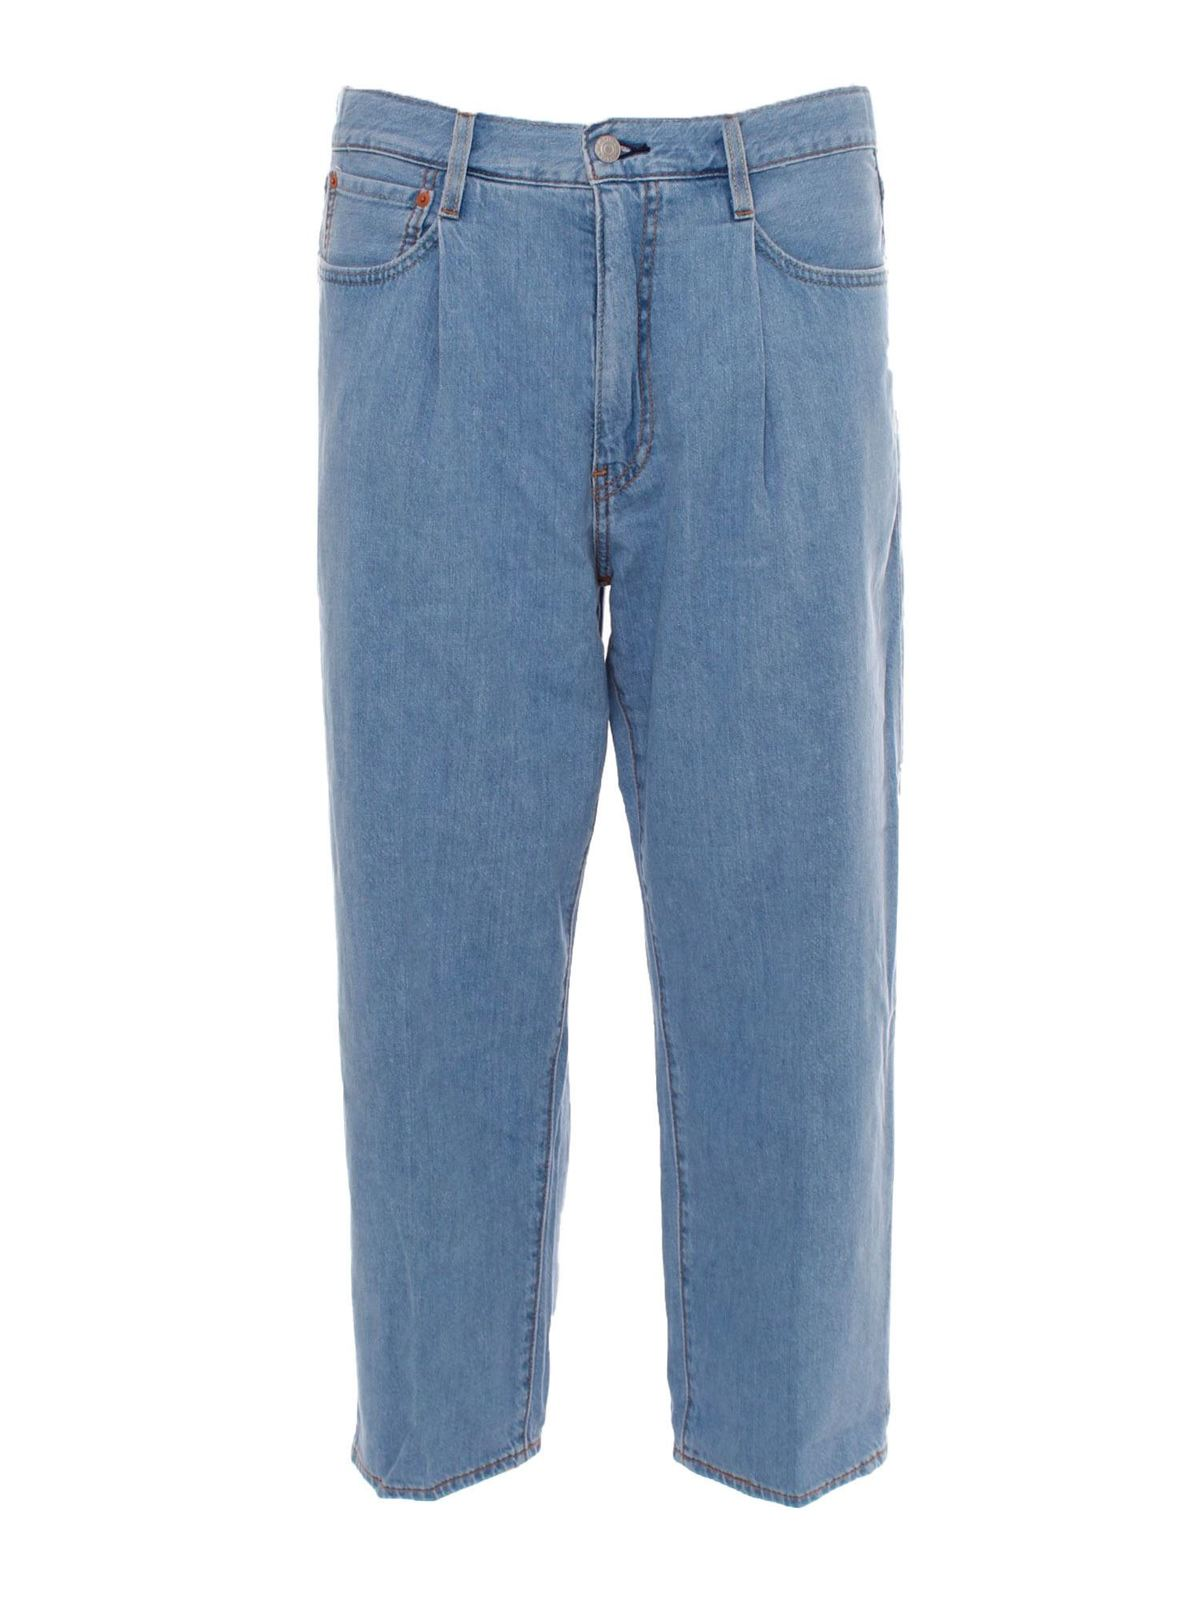 Levi's Cottons STAY LOOSE CROPPED JEANS IN BLUE